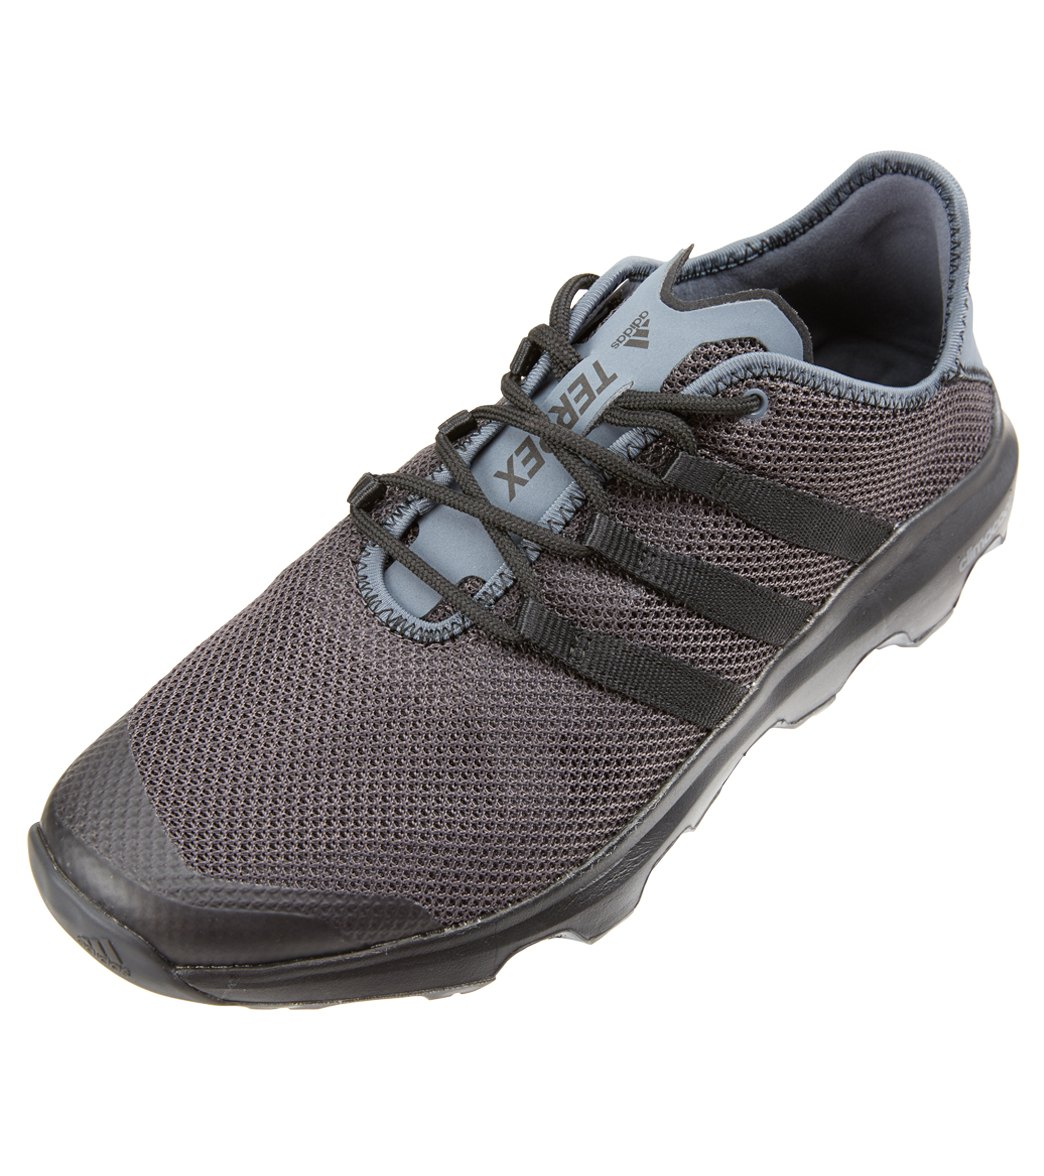 Adidas Men's Climacool Voyager Water Shoe at SwimOutlet.com - Free Shipping